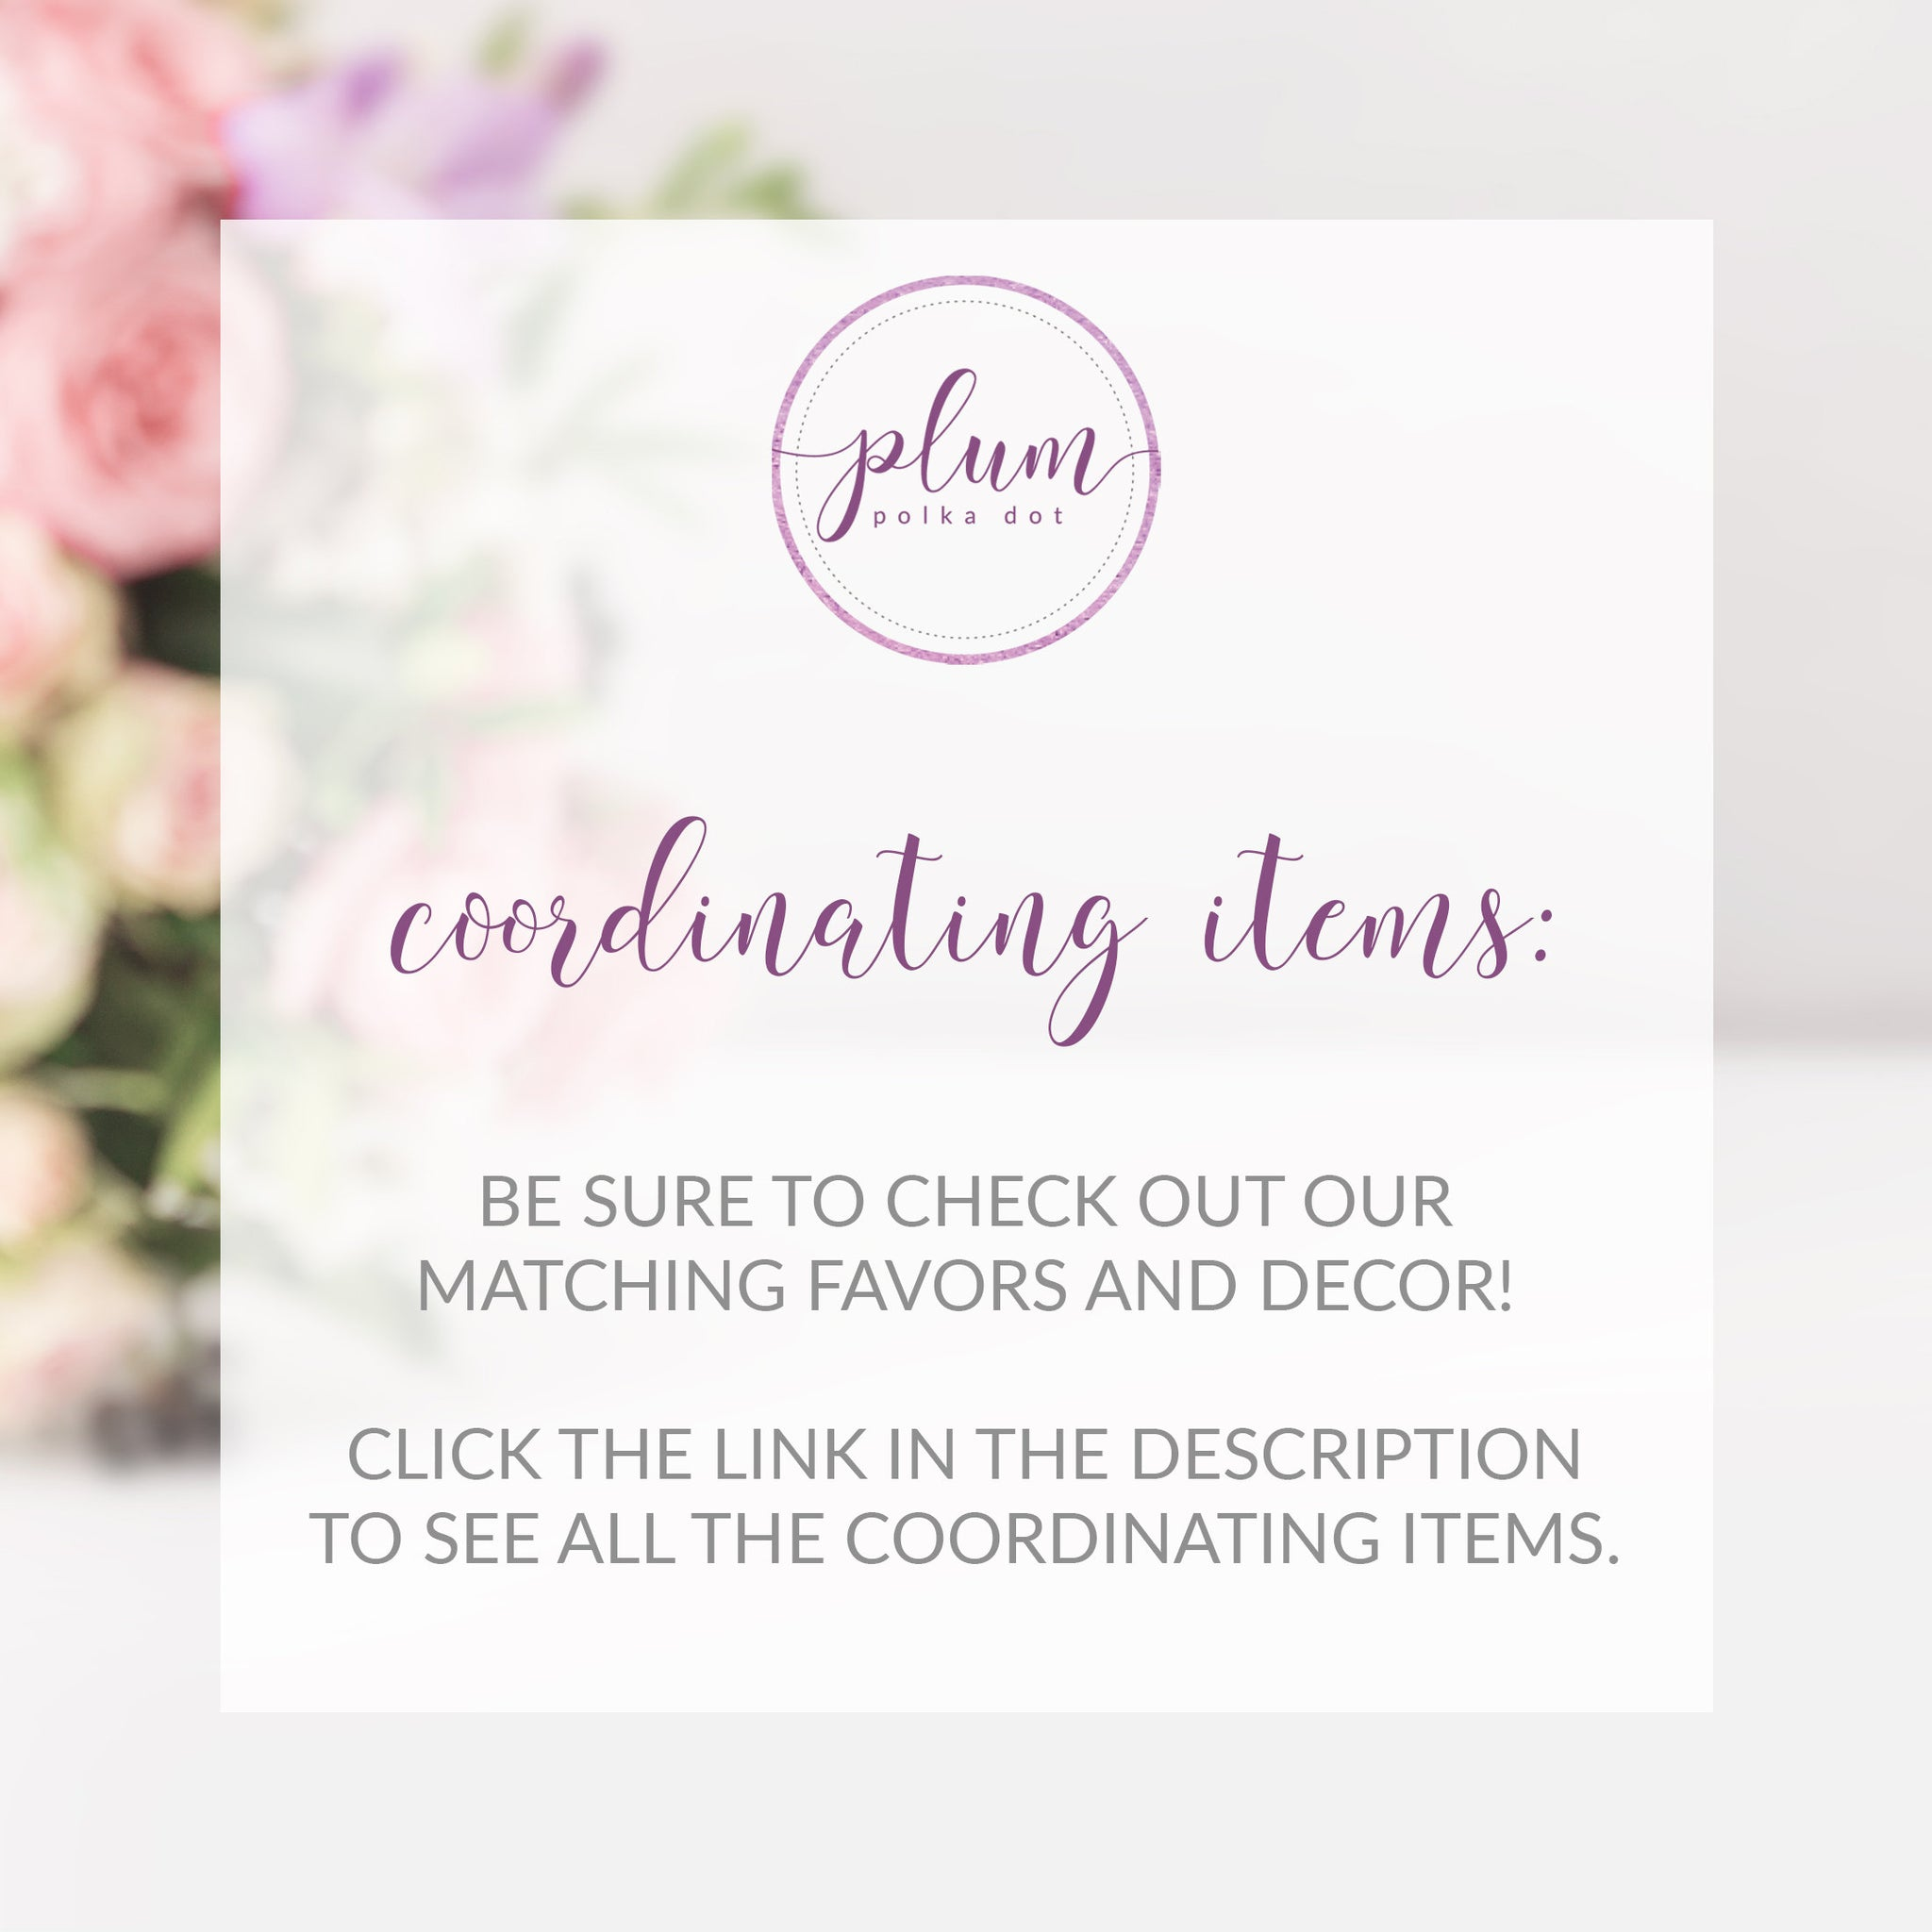 Blush Floral Greenery Cards and Gifts Sign Printable INSTANT DOWNLOAD, Gold Bridal Shower Gifts Sign, Wedding Decoration Supplies - BGF100 - @PlumPolkaDot